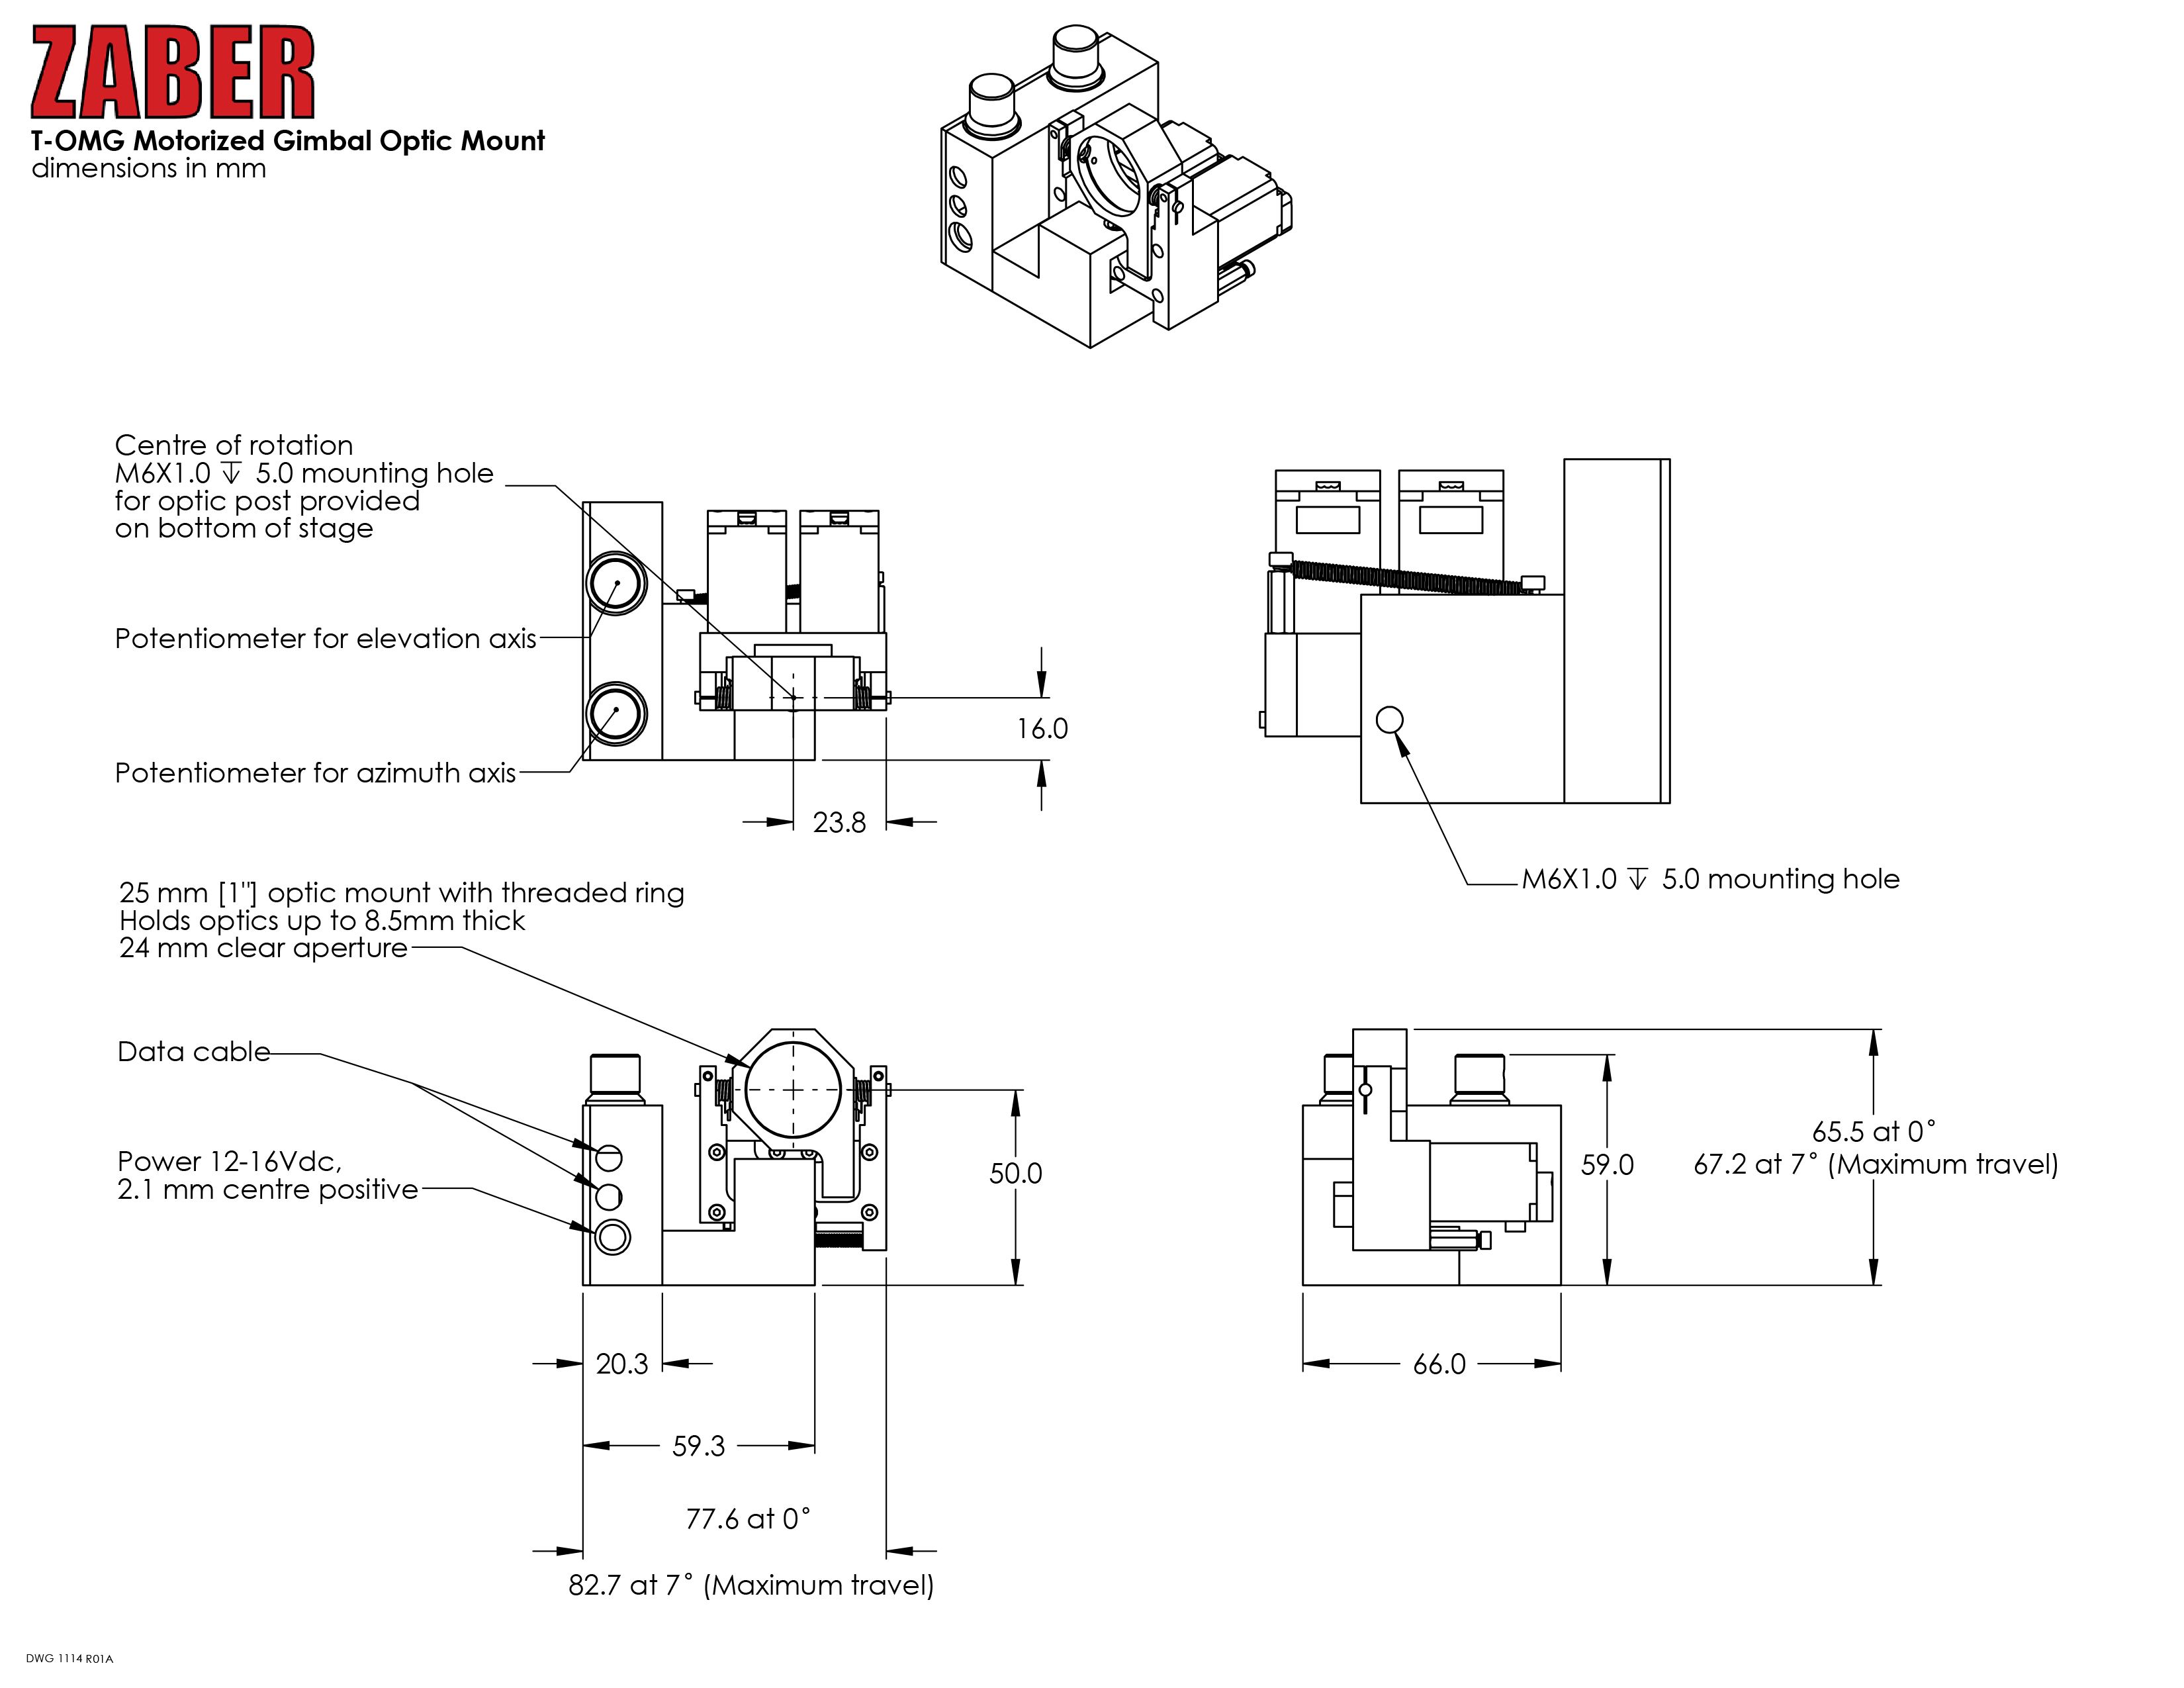 there is also a wiring diagram for mseries jeeps this diagram referst omg user s manual zaber technologies rh zaber com